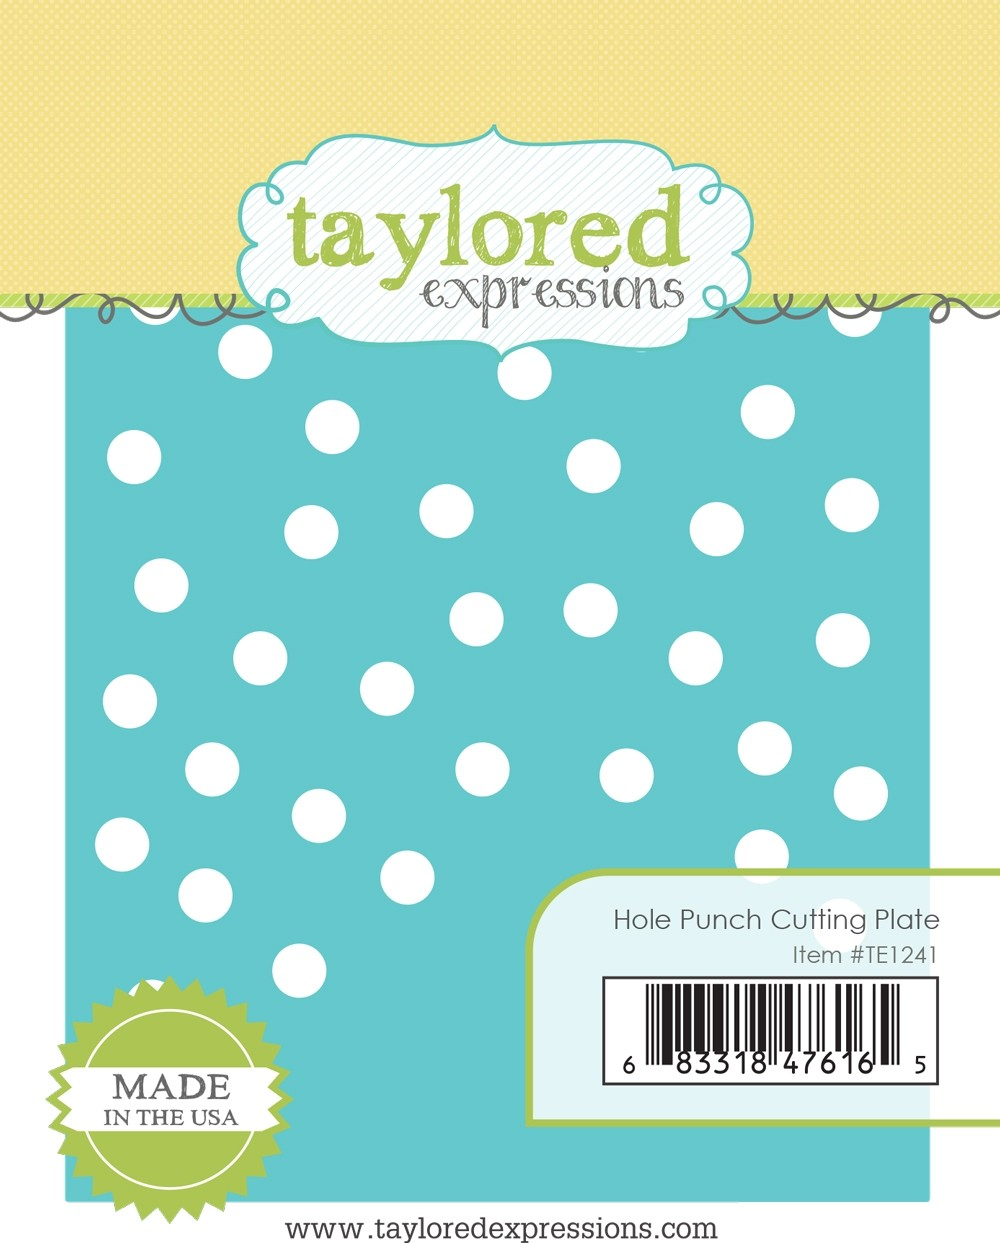 *NEW* - Taylored Expression - Hole Punch Cutting Plate